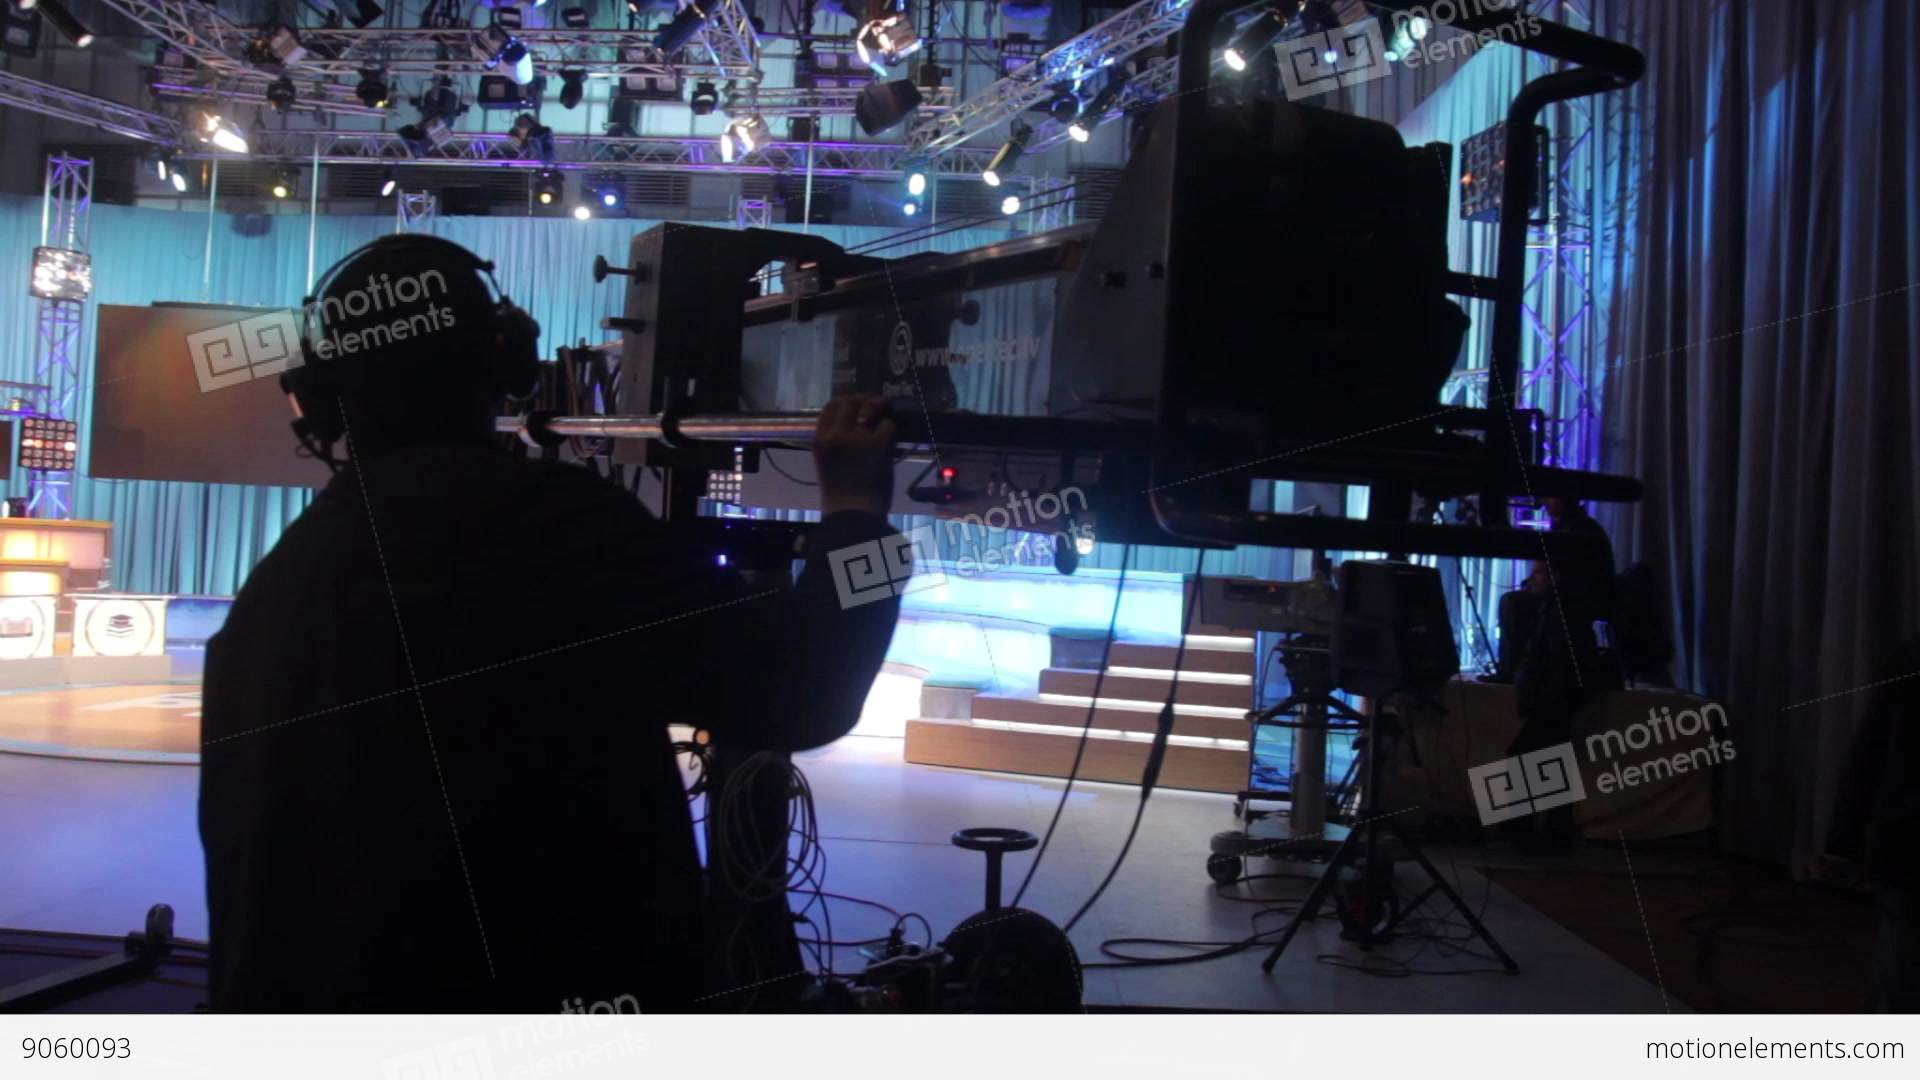 the man controls the crane with the camera in the tv studio during